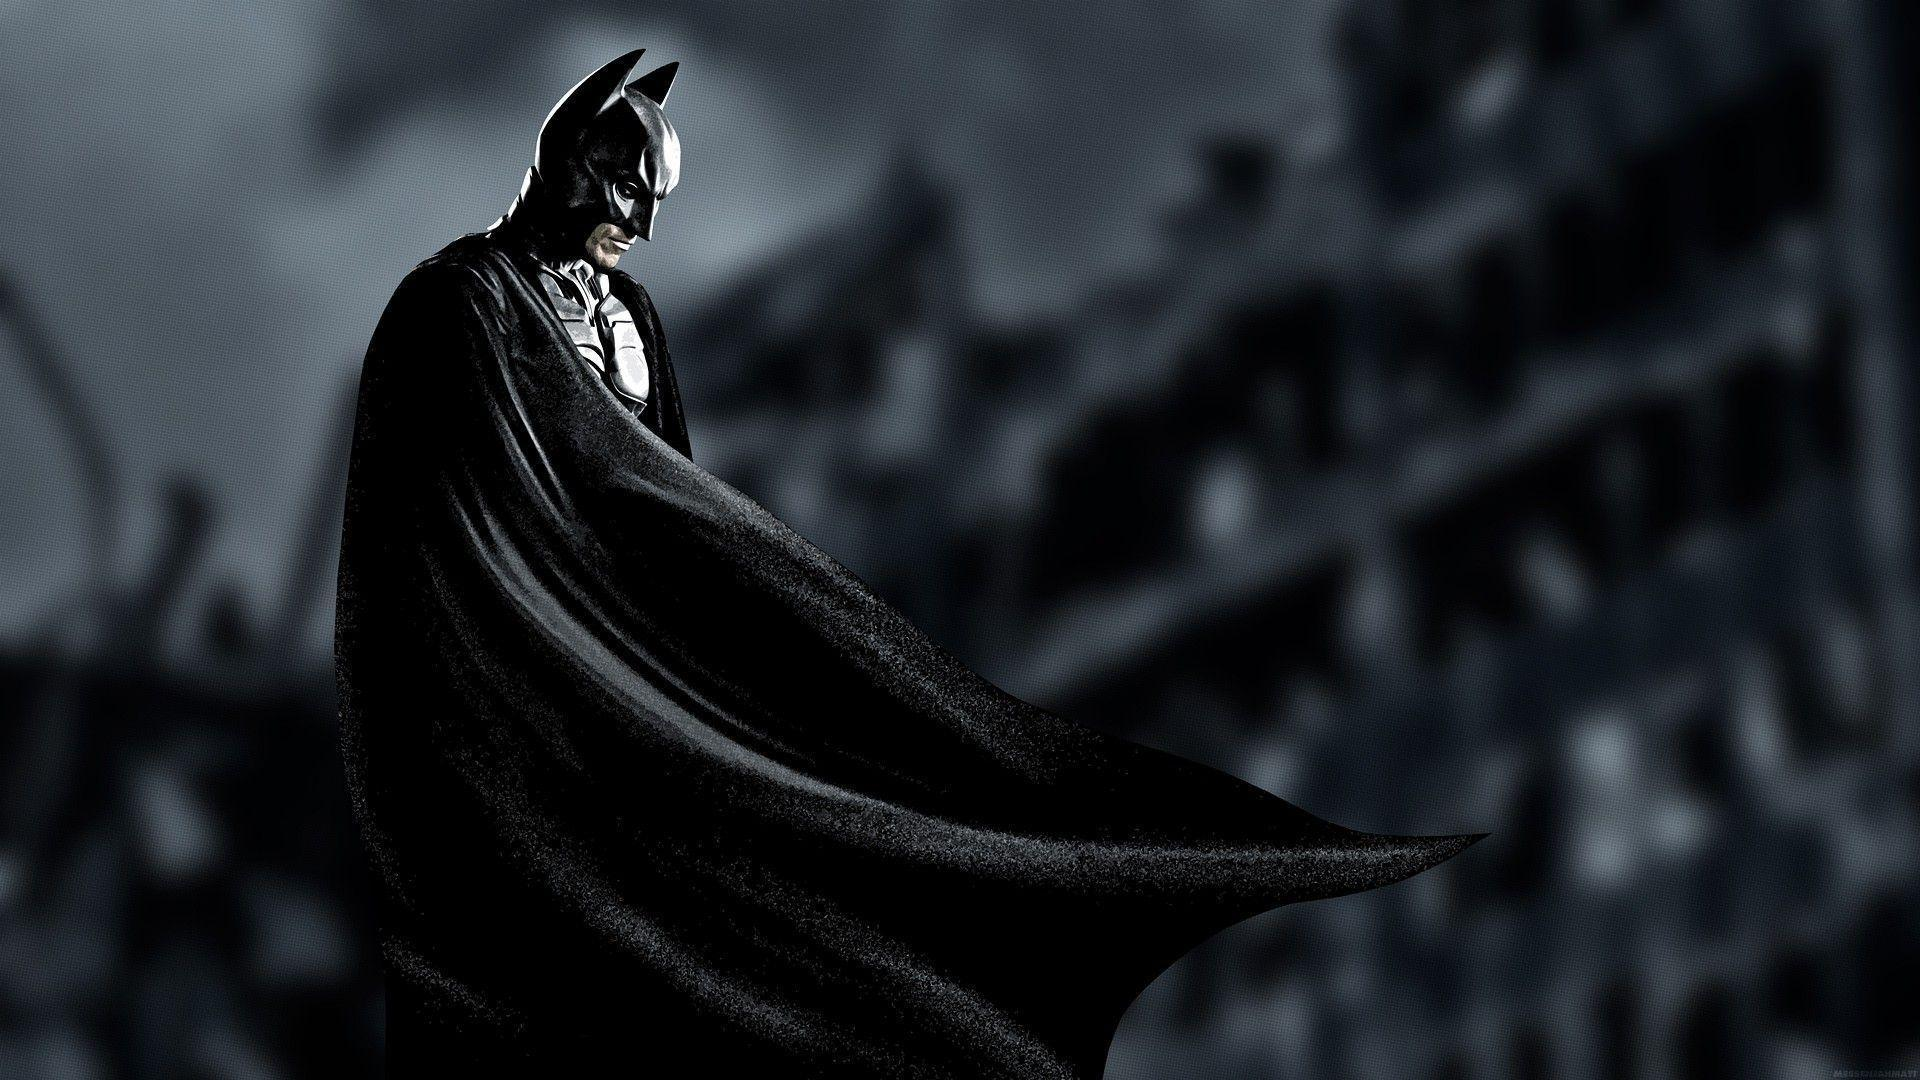 hd batman wallpapers wallpaper cave